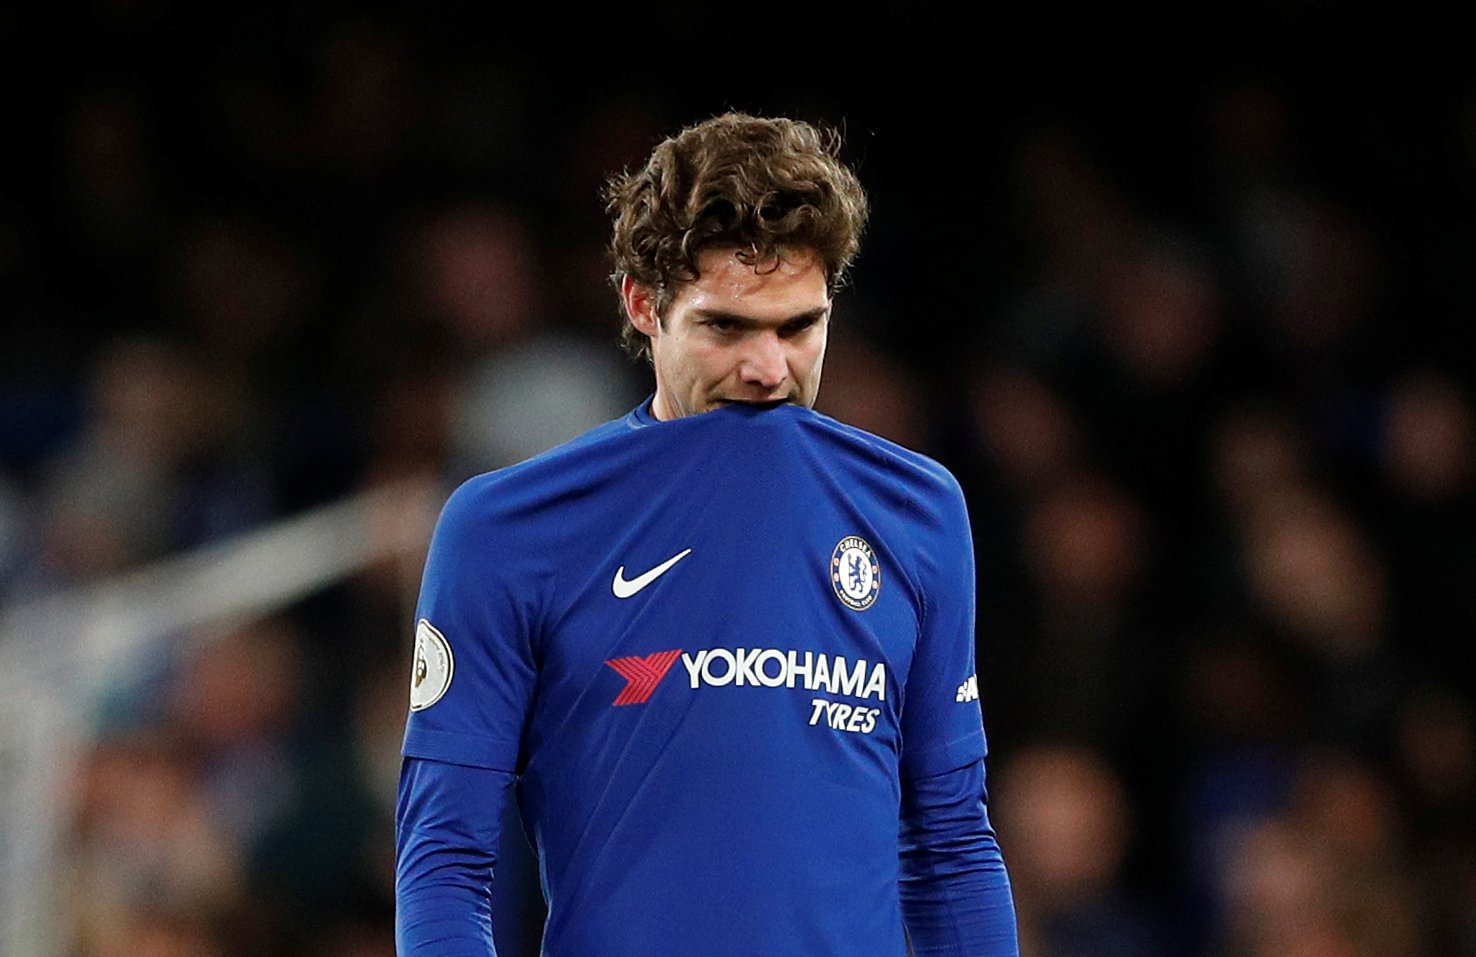 "Soccer Football - Premier League - Chelsea vs AFC Bournemouth - Stamford Bridge, London, Britain - January 31, 2018 Chelsea's Marcos Alonso looks dejected after Bournemouth's Junior Stanislas scores their second goal Action Images via Reuters/John Sibley EDITORIAL USE ONLY. No use with unauthorized audio, video, data, fixture lists, club/league logos or ""live"" services. Online in-match use limited to 75 images, no video emulation. No use in betting, games or single club/league/player publications. Please contact your account representative for further details."